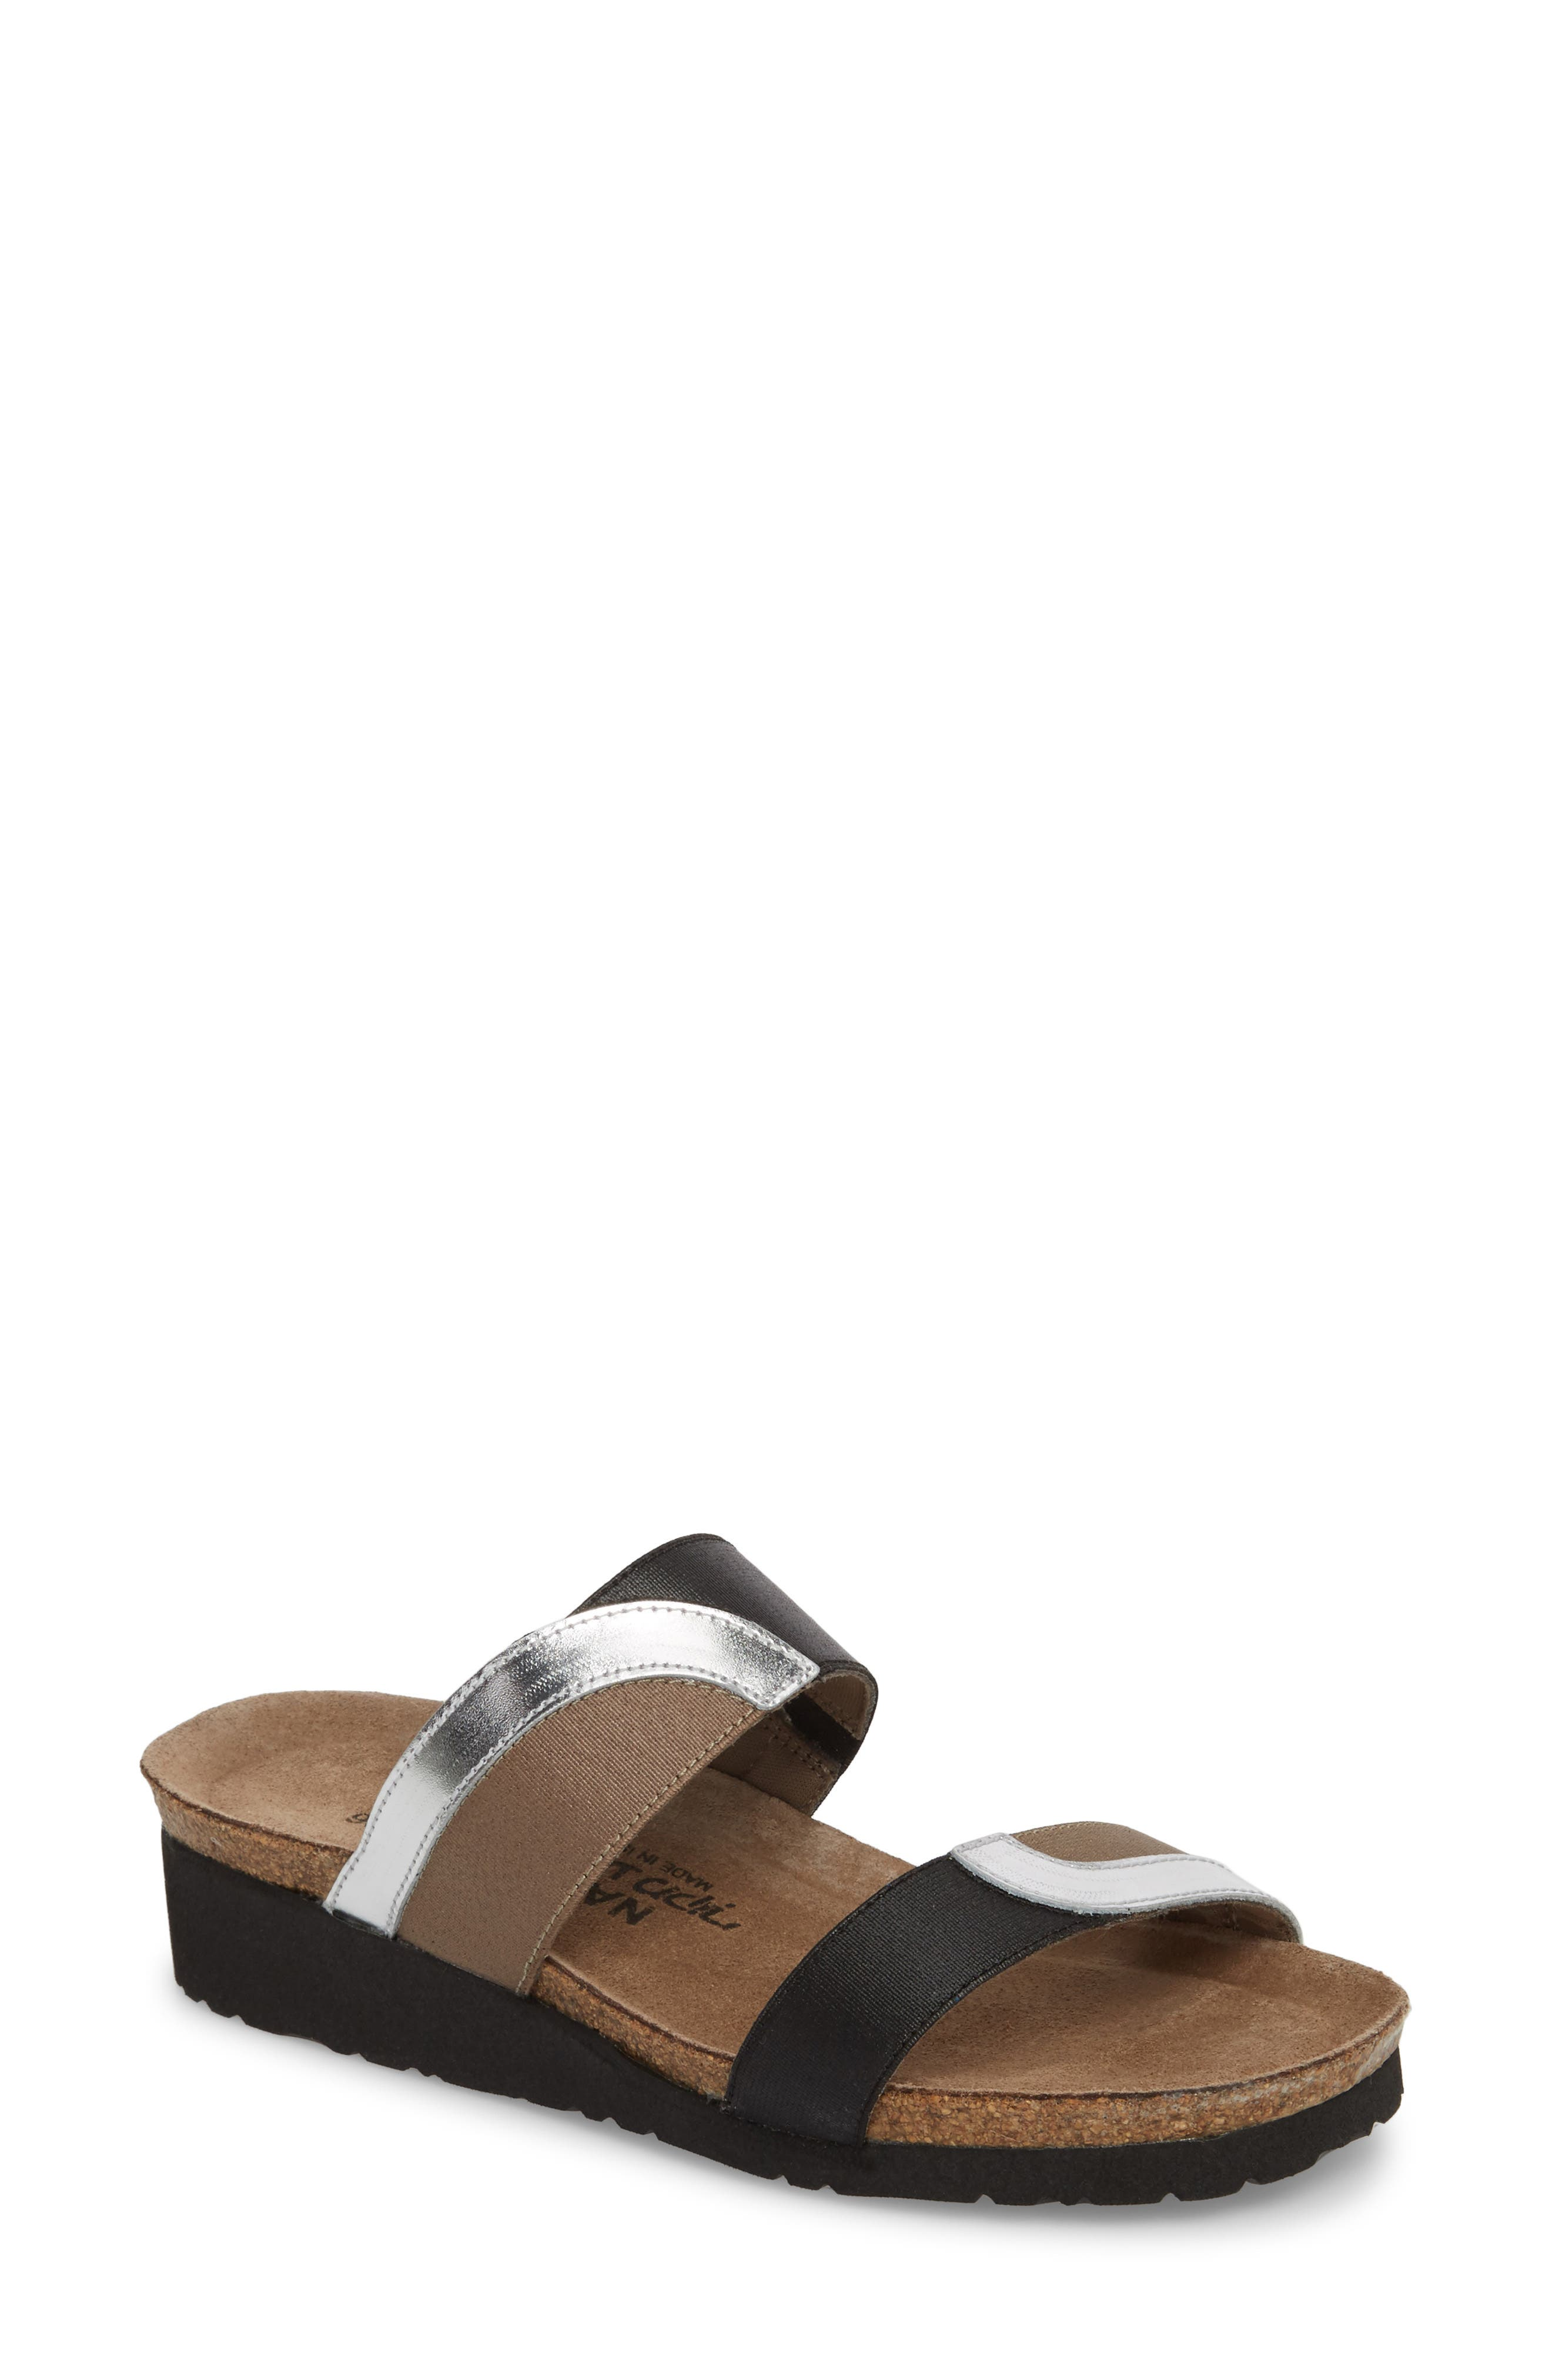 Frankie Slide Sandal,                             Main thumbnail 1, color,                             SILVER MIRROR LEATHER